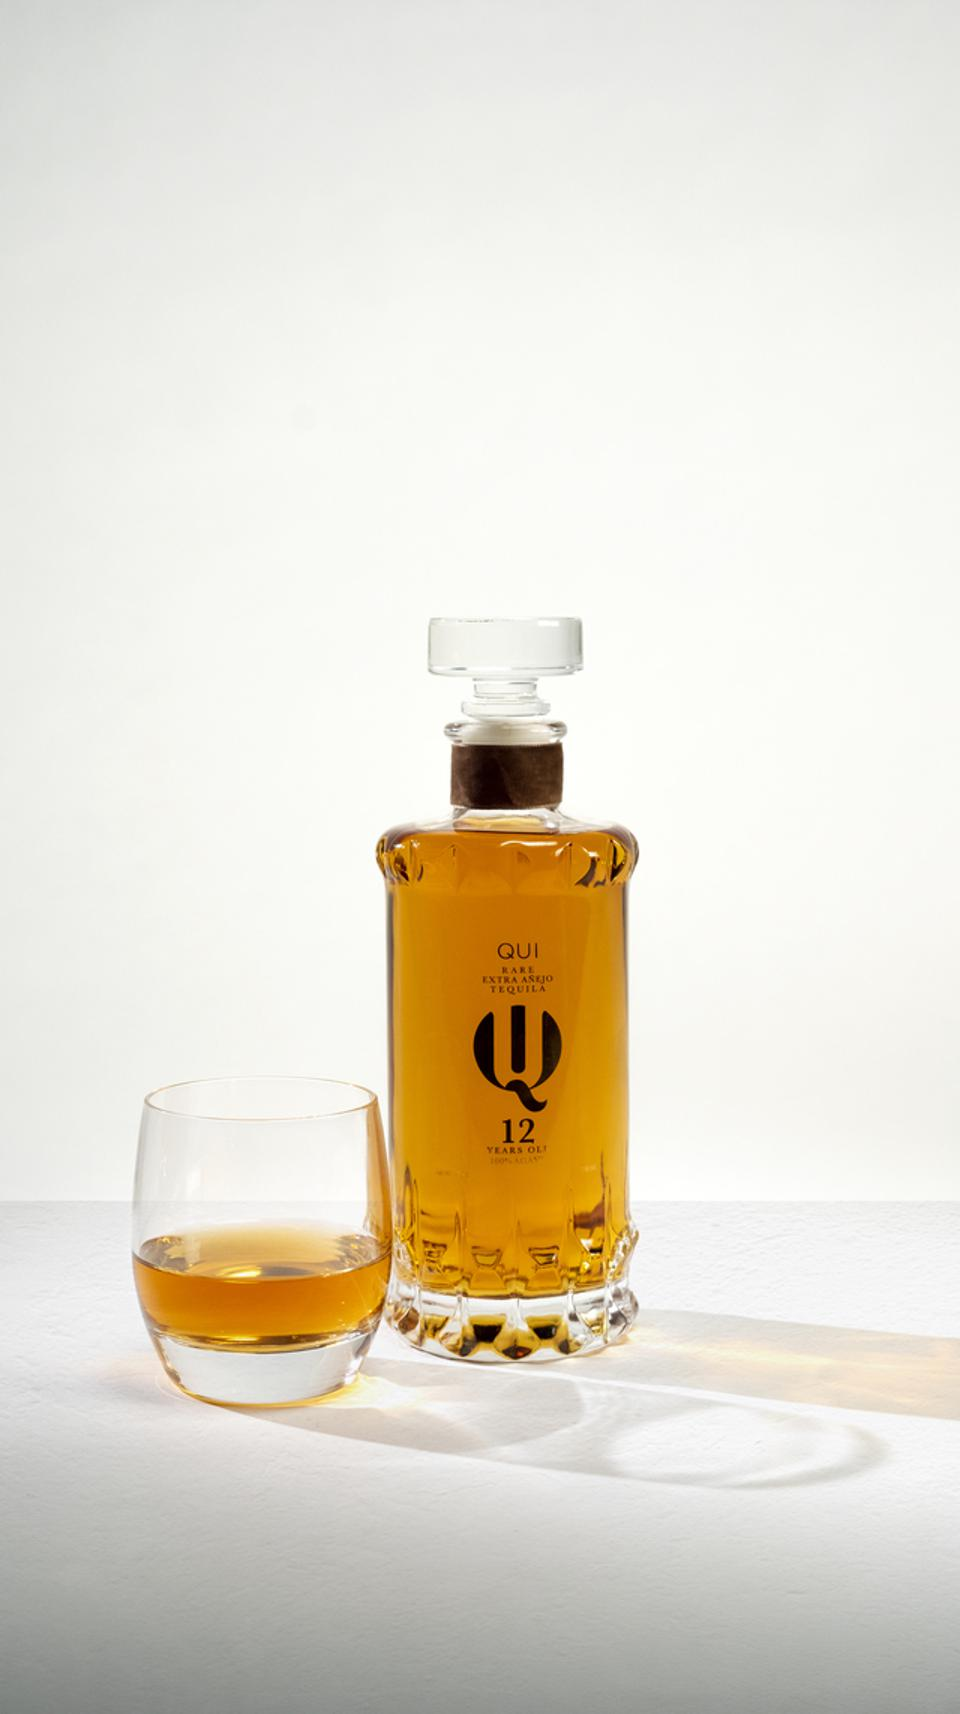 QUI Rare, like many of the tequilas on this list, features a dark amber color, more reminiscent of whisky or brandy than tequila.